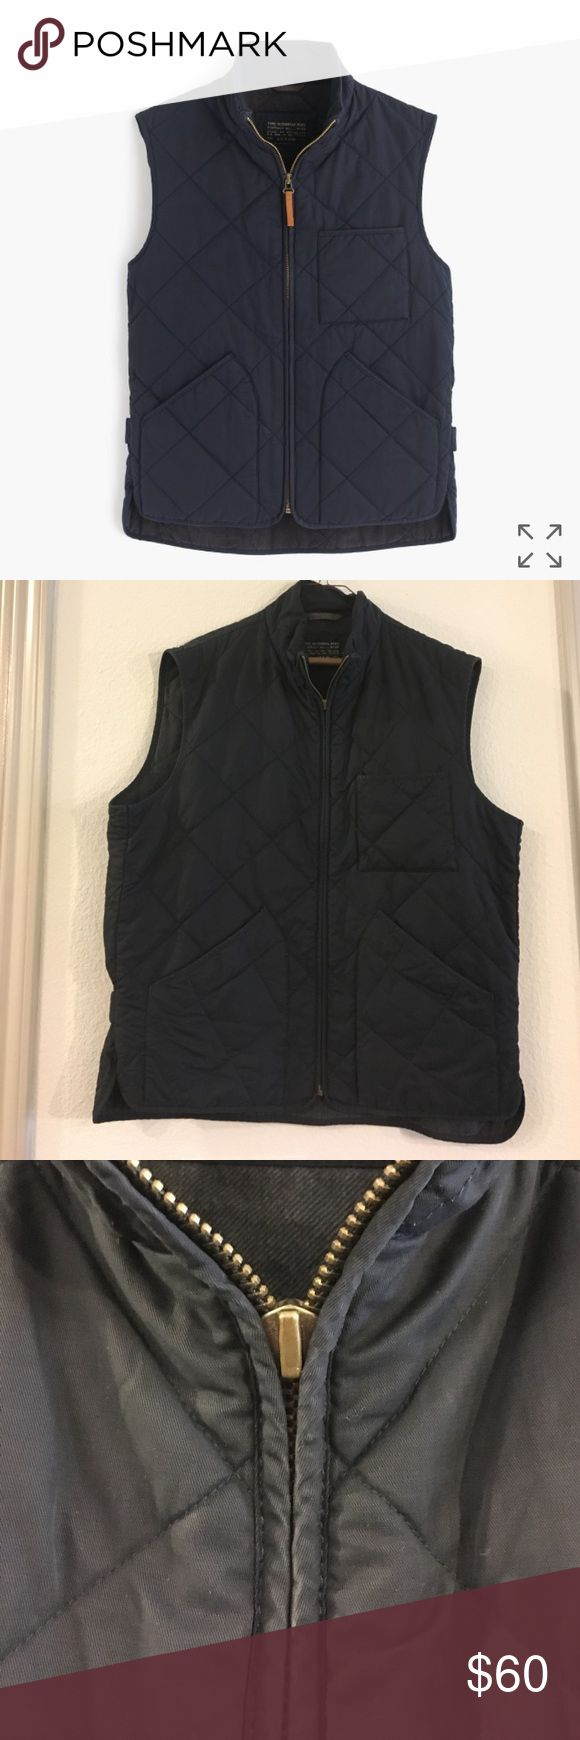 J.Crew men's sussex quilted vest Men's J crew Sussex Quilted vest in vintage navy. This is a great vest for fall/winter. Very durable. The zipper pull is broken and needs replacement. Zipper still works just more cumbersome. Otherwise- in excellent condition with very little sign of wear. J. Crew Jackets & Coats Vests